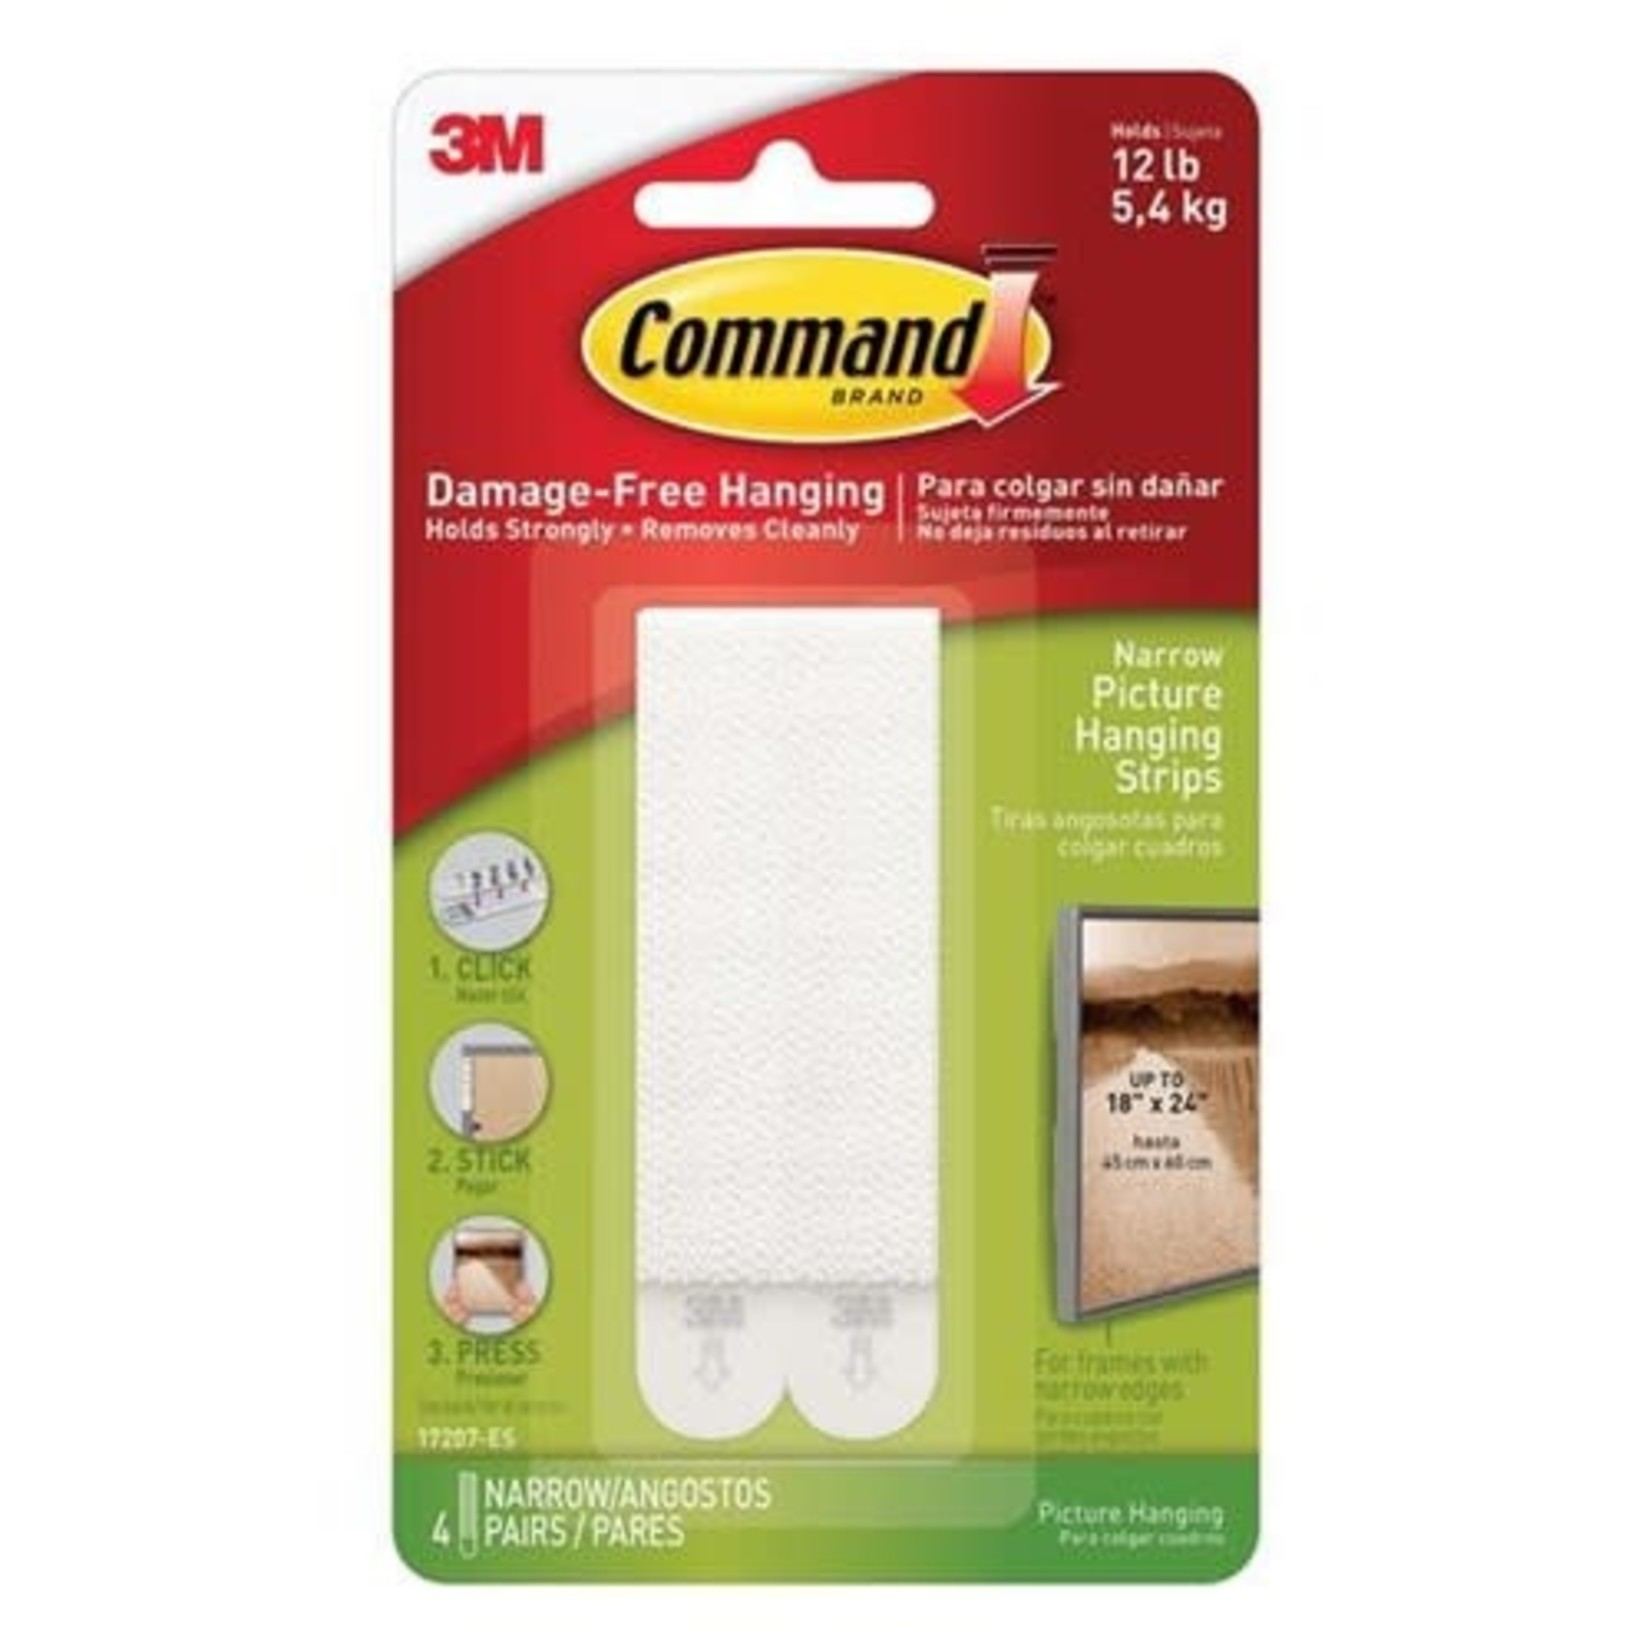 3M Command COMMAND NARROW PICTURE HANGING STRIPS WHITE 4 PACK 12LB 5.4KG